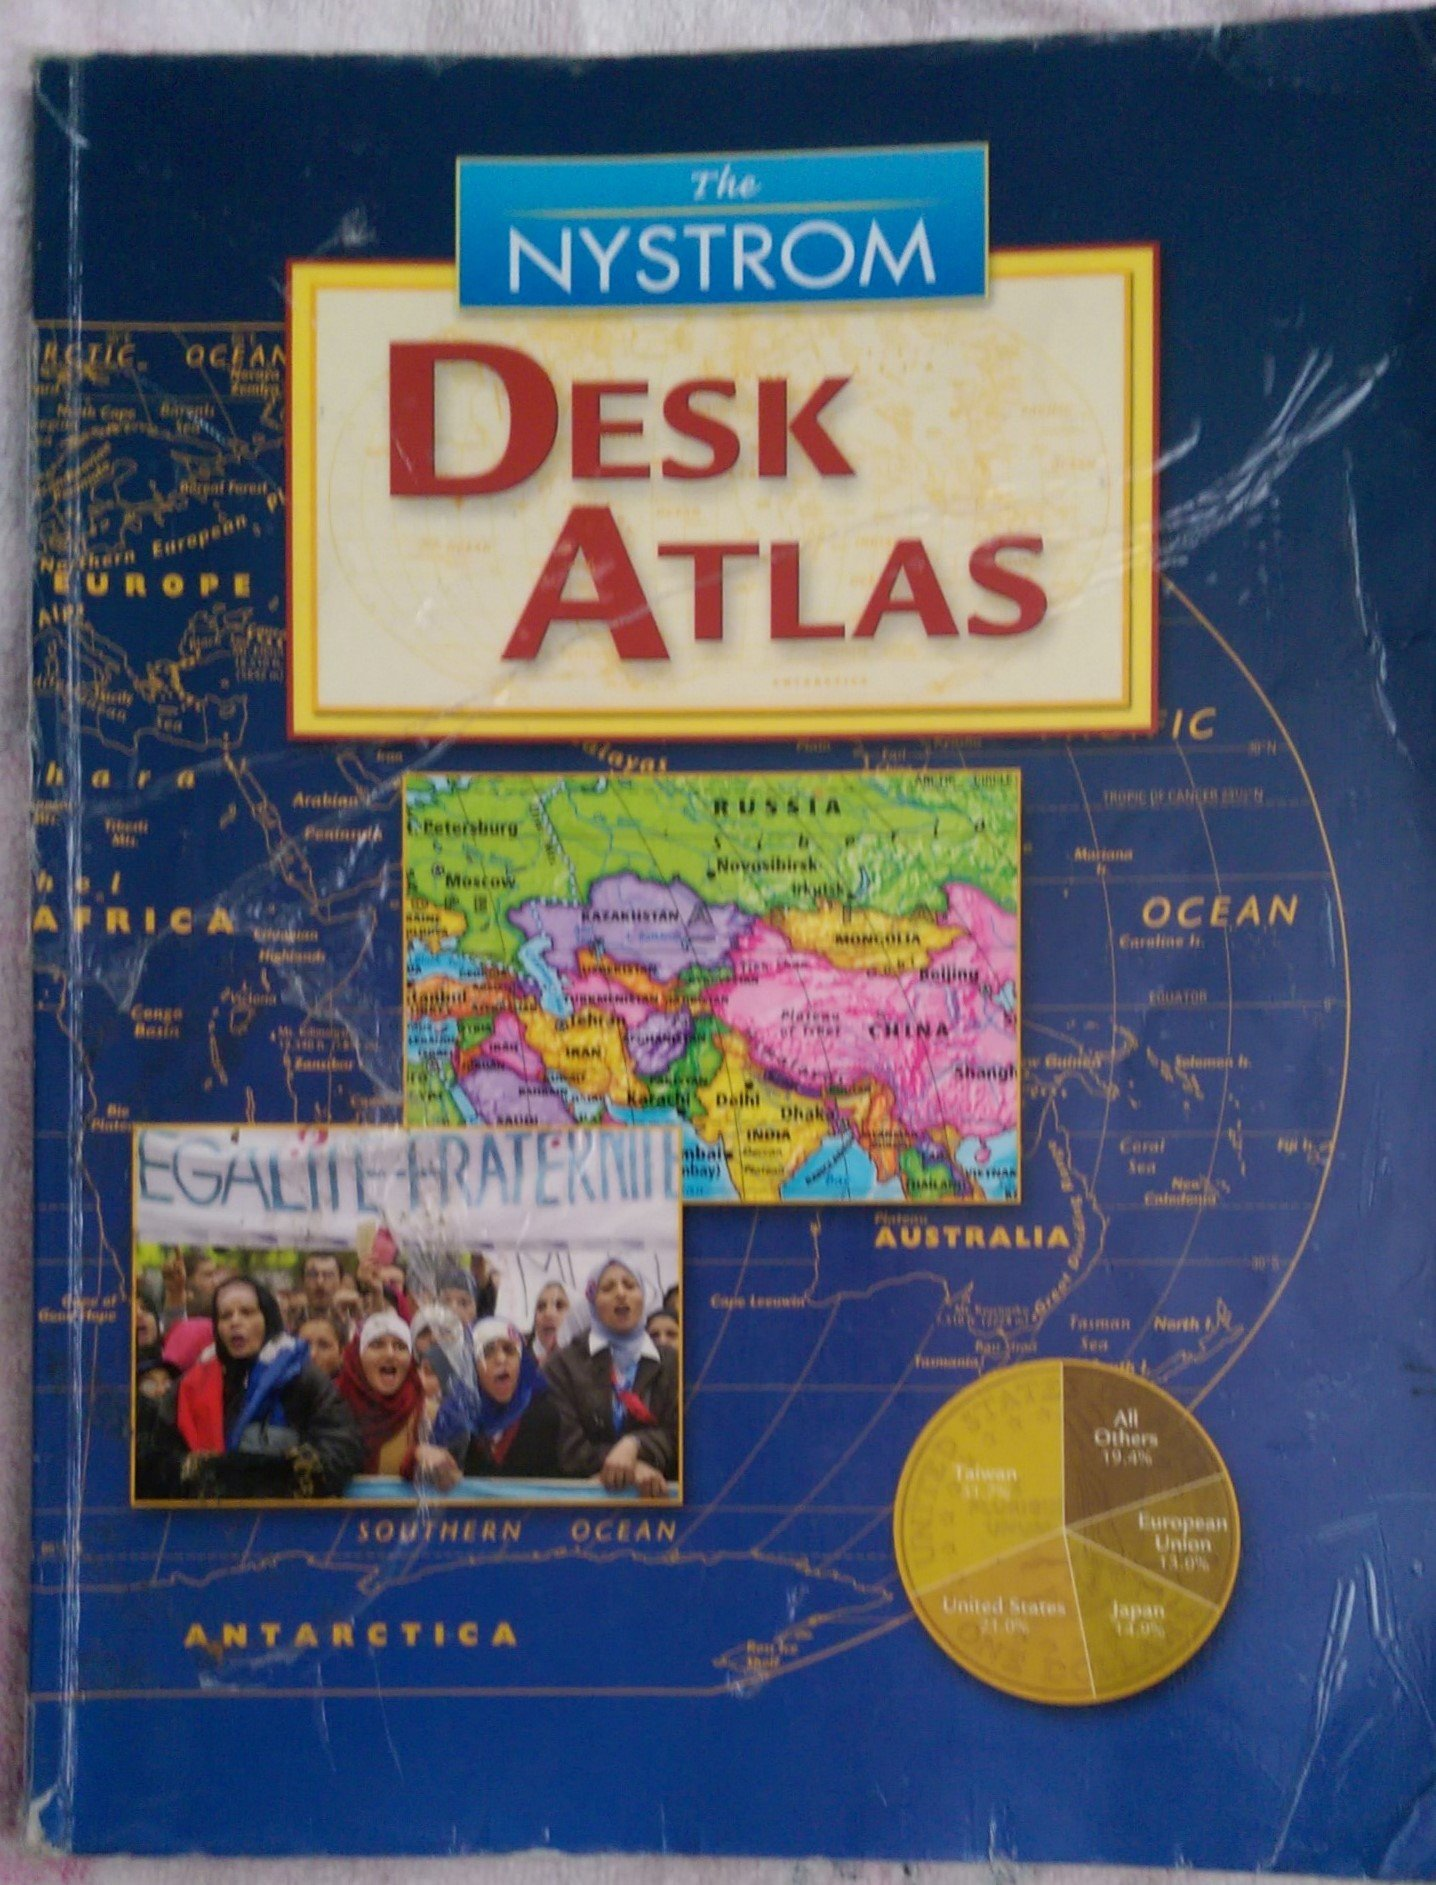 The nystrom desk atlas nystrom 9780782511888 amazon books fandeluxe Images